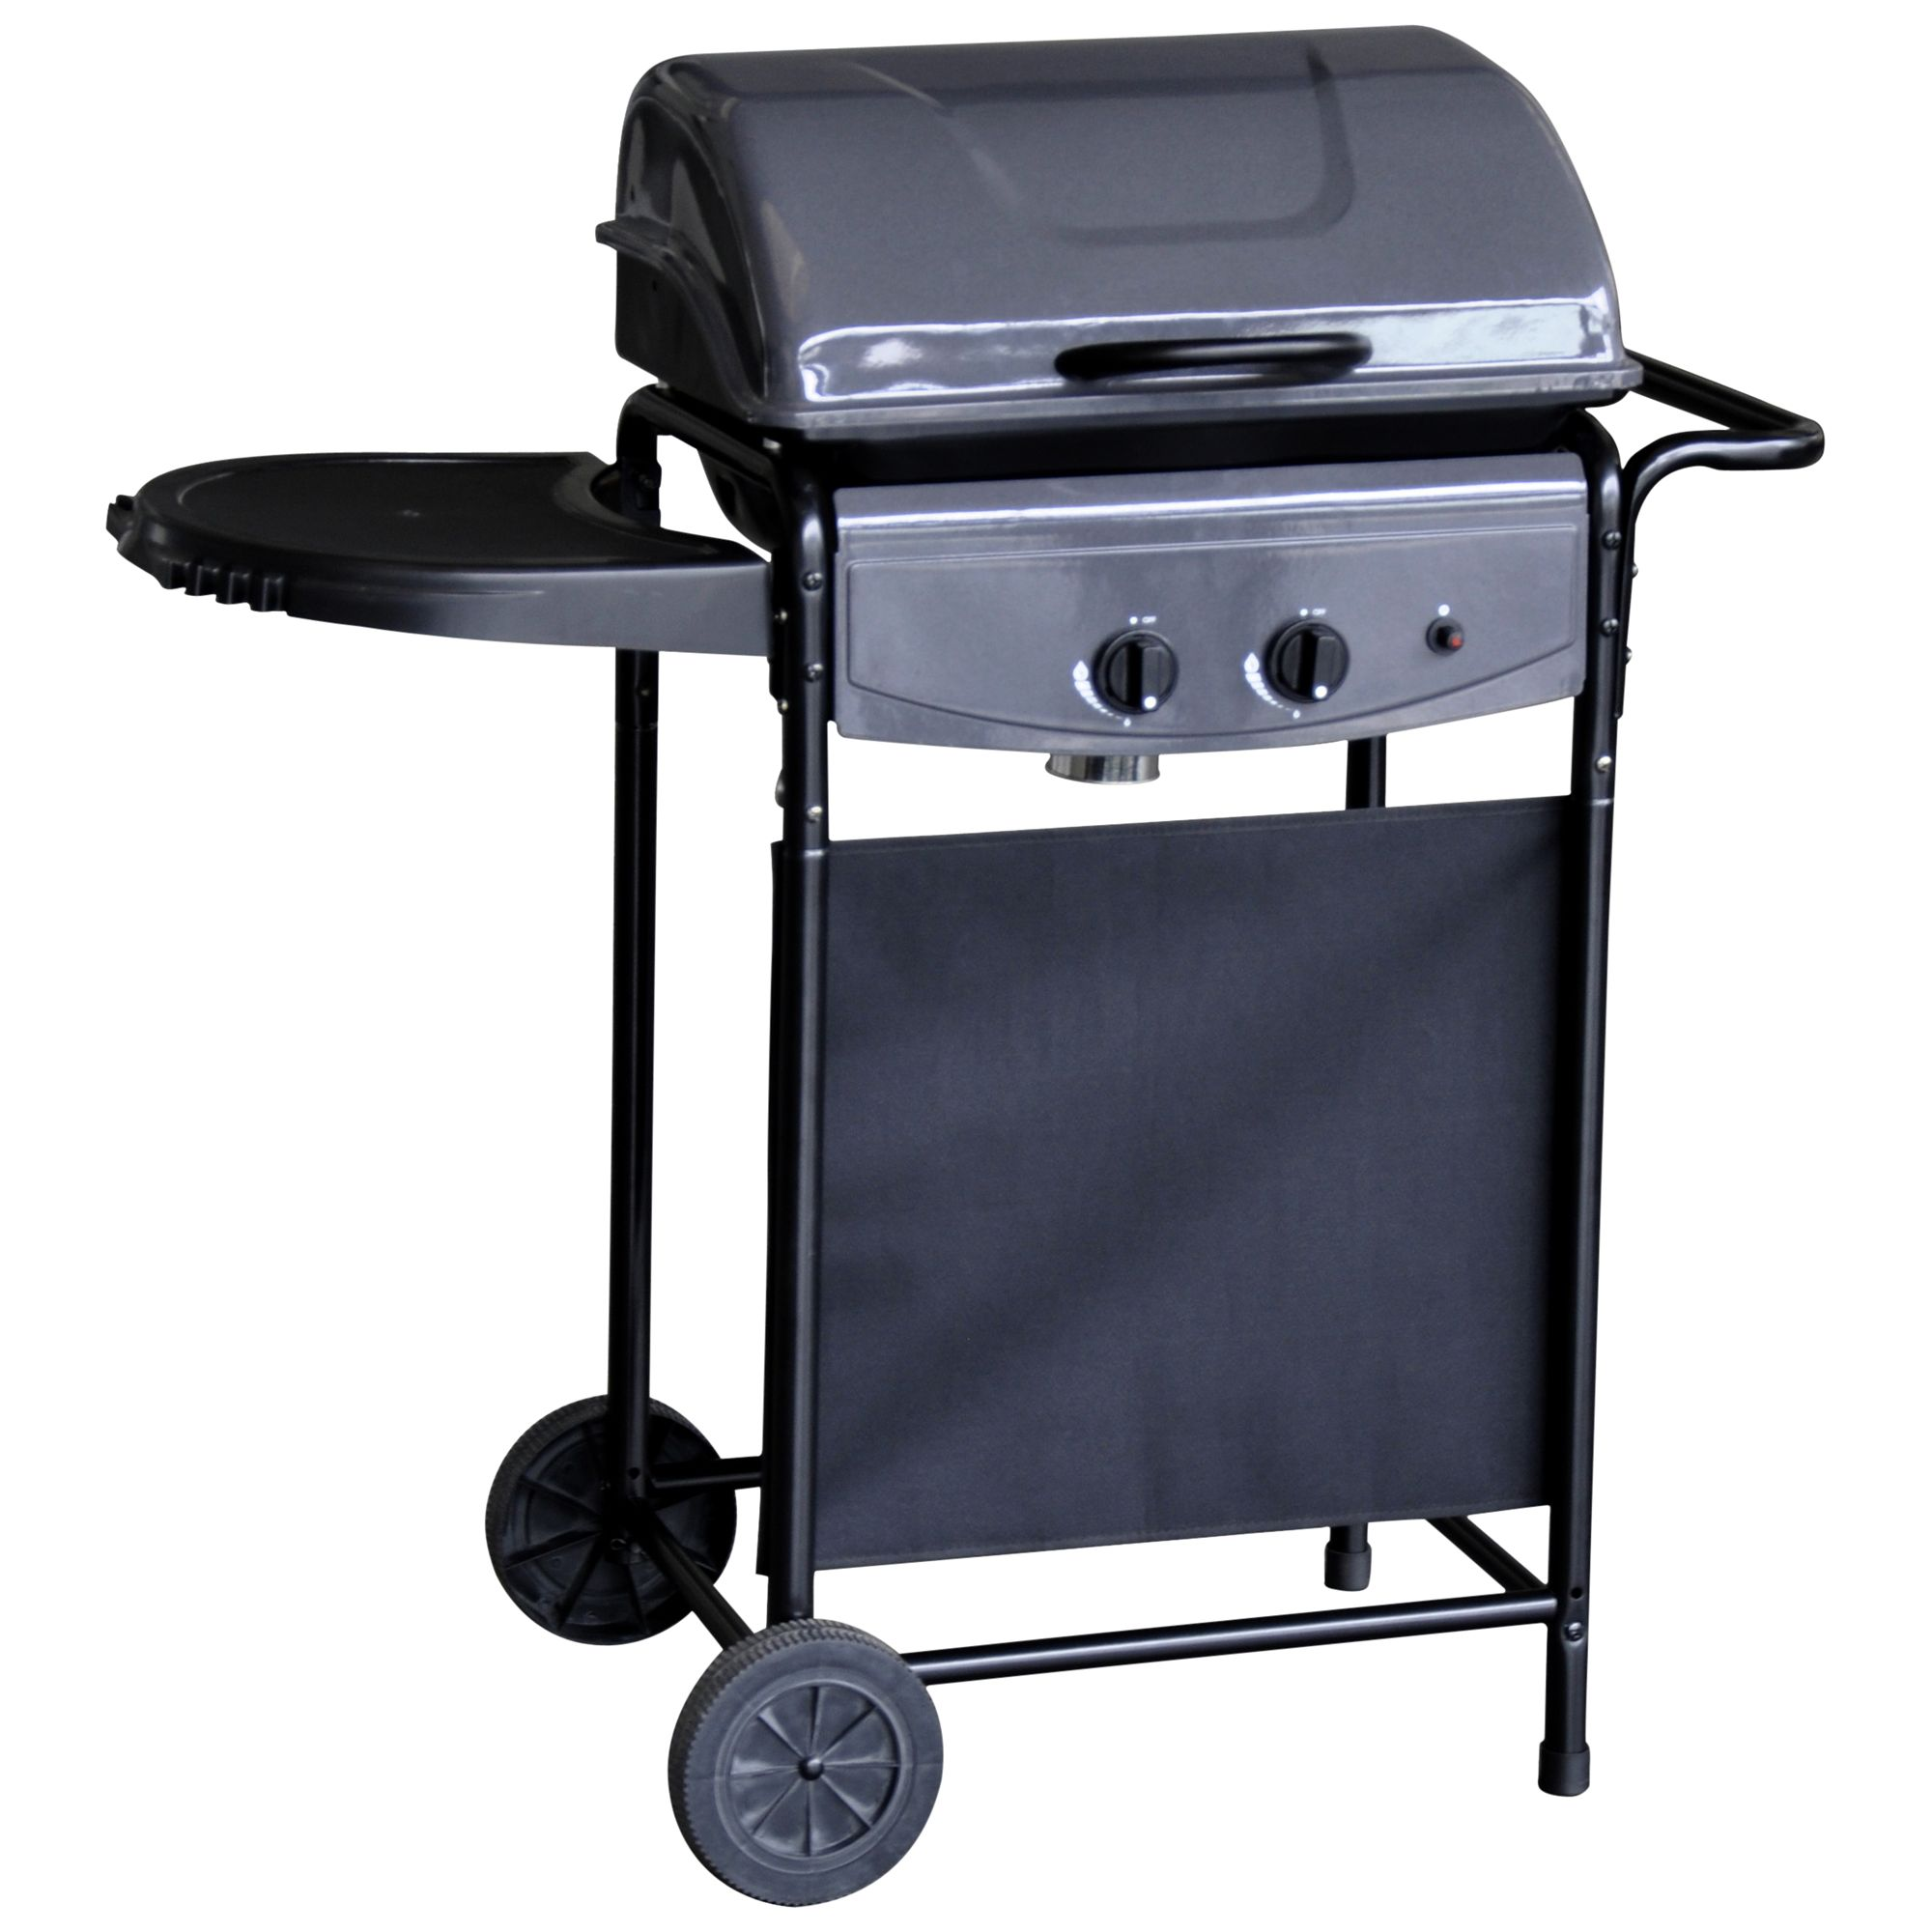 John Lewis Bistro 2 Burner Gas Barbecue, Black